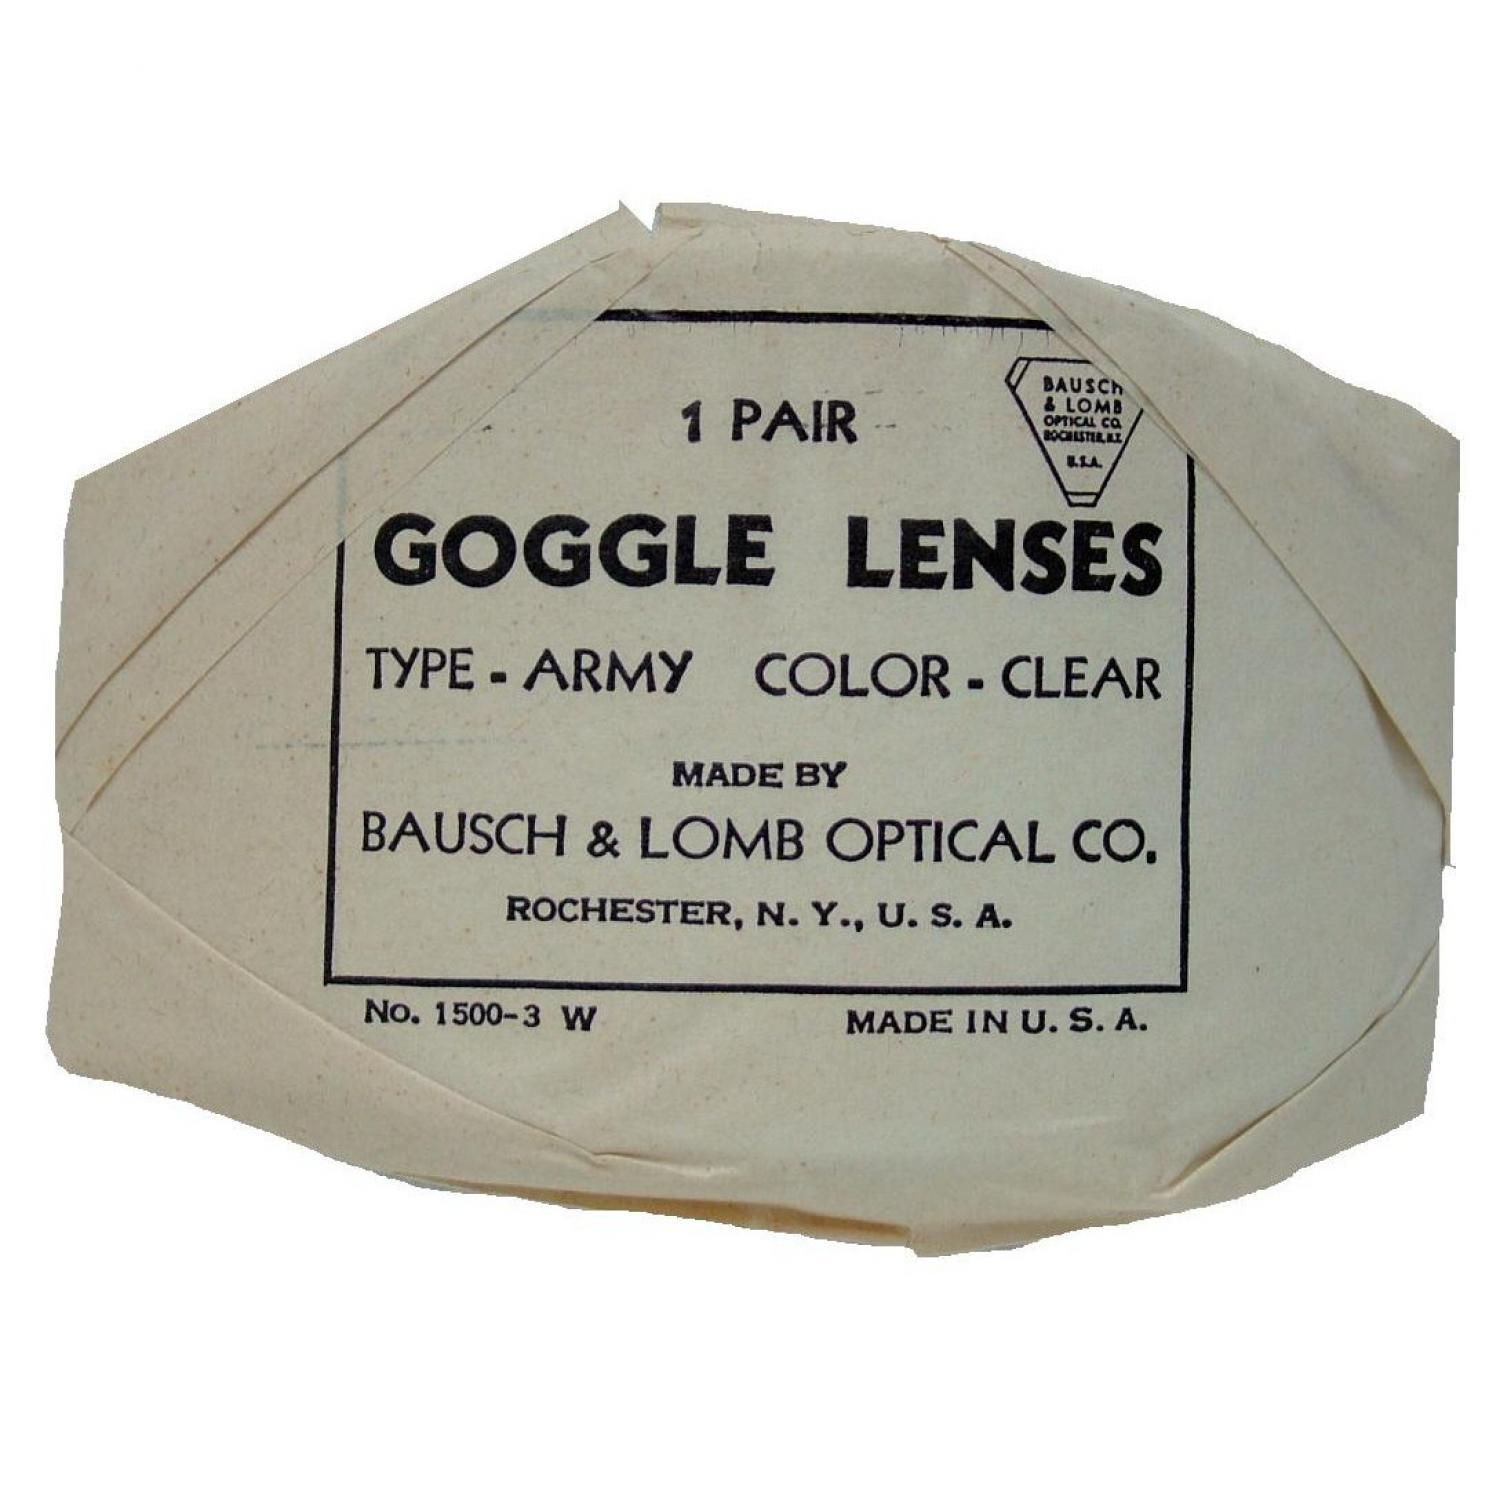 USAAF AN6530 Flying Goggle Lenses